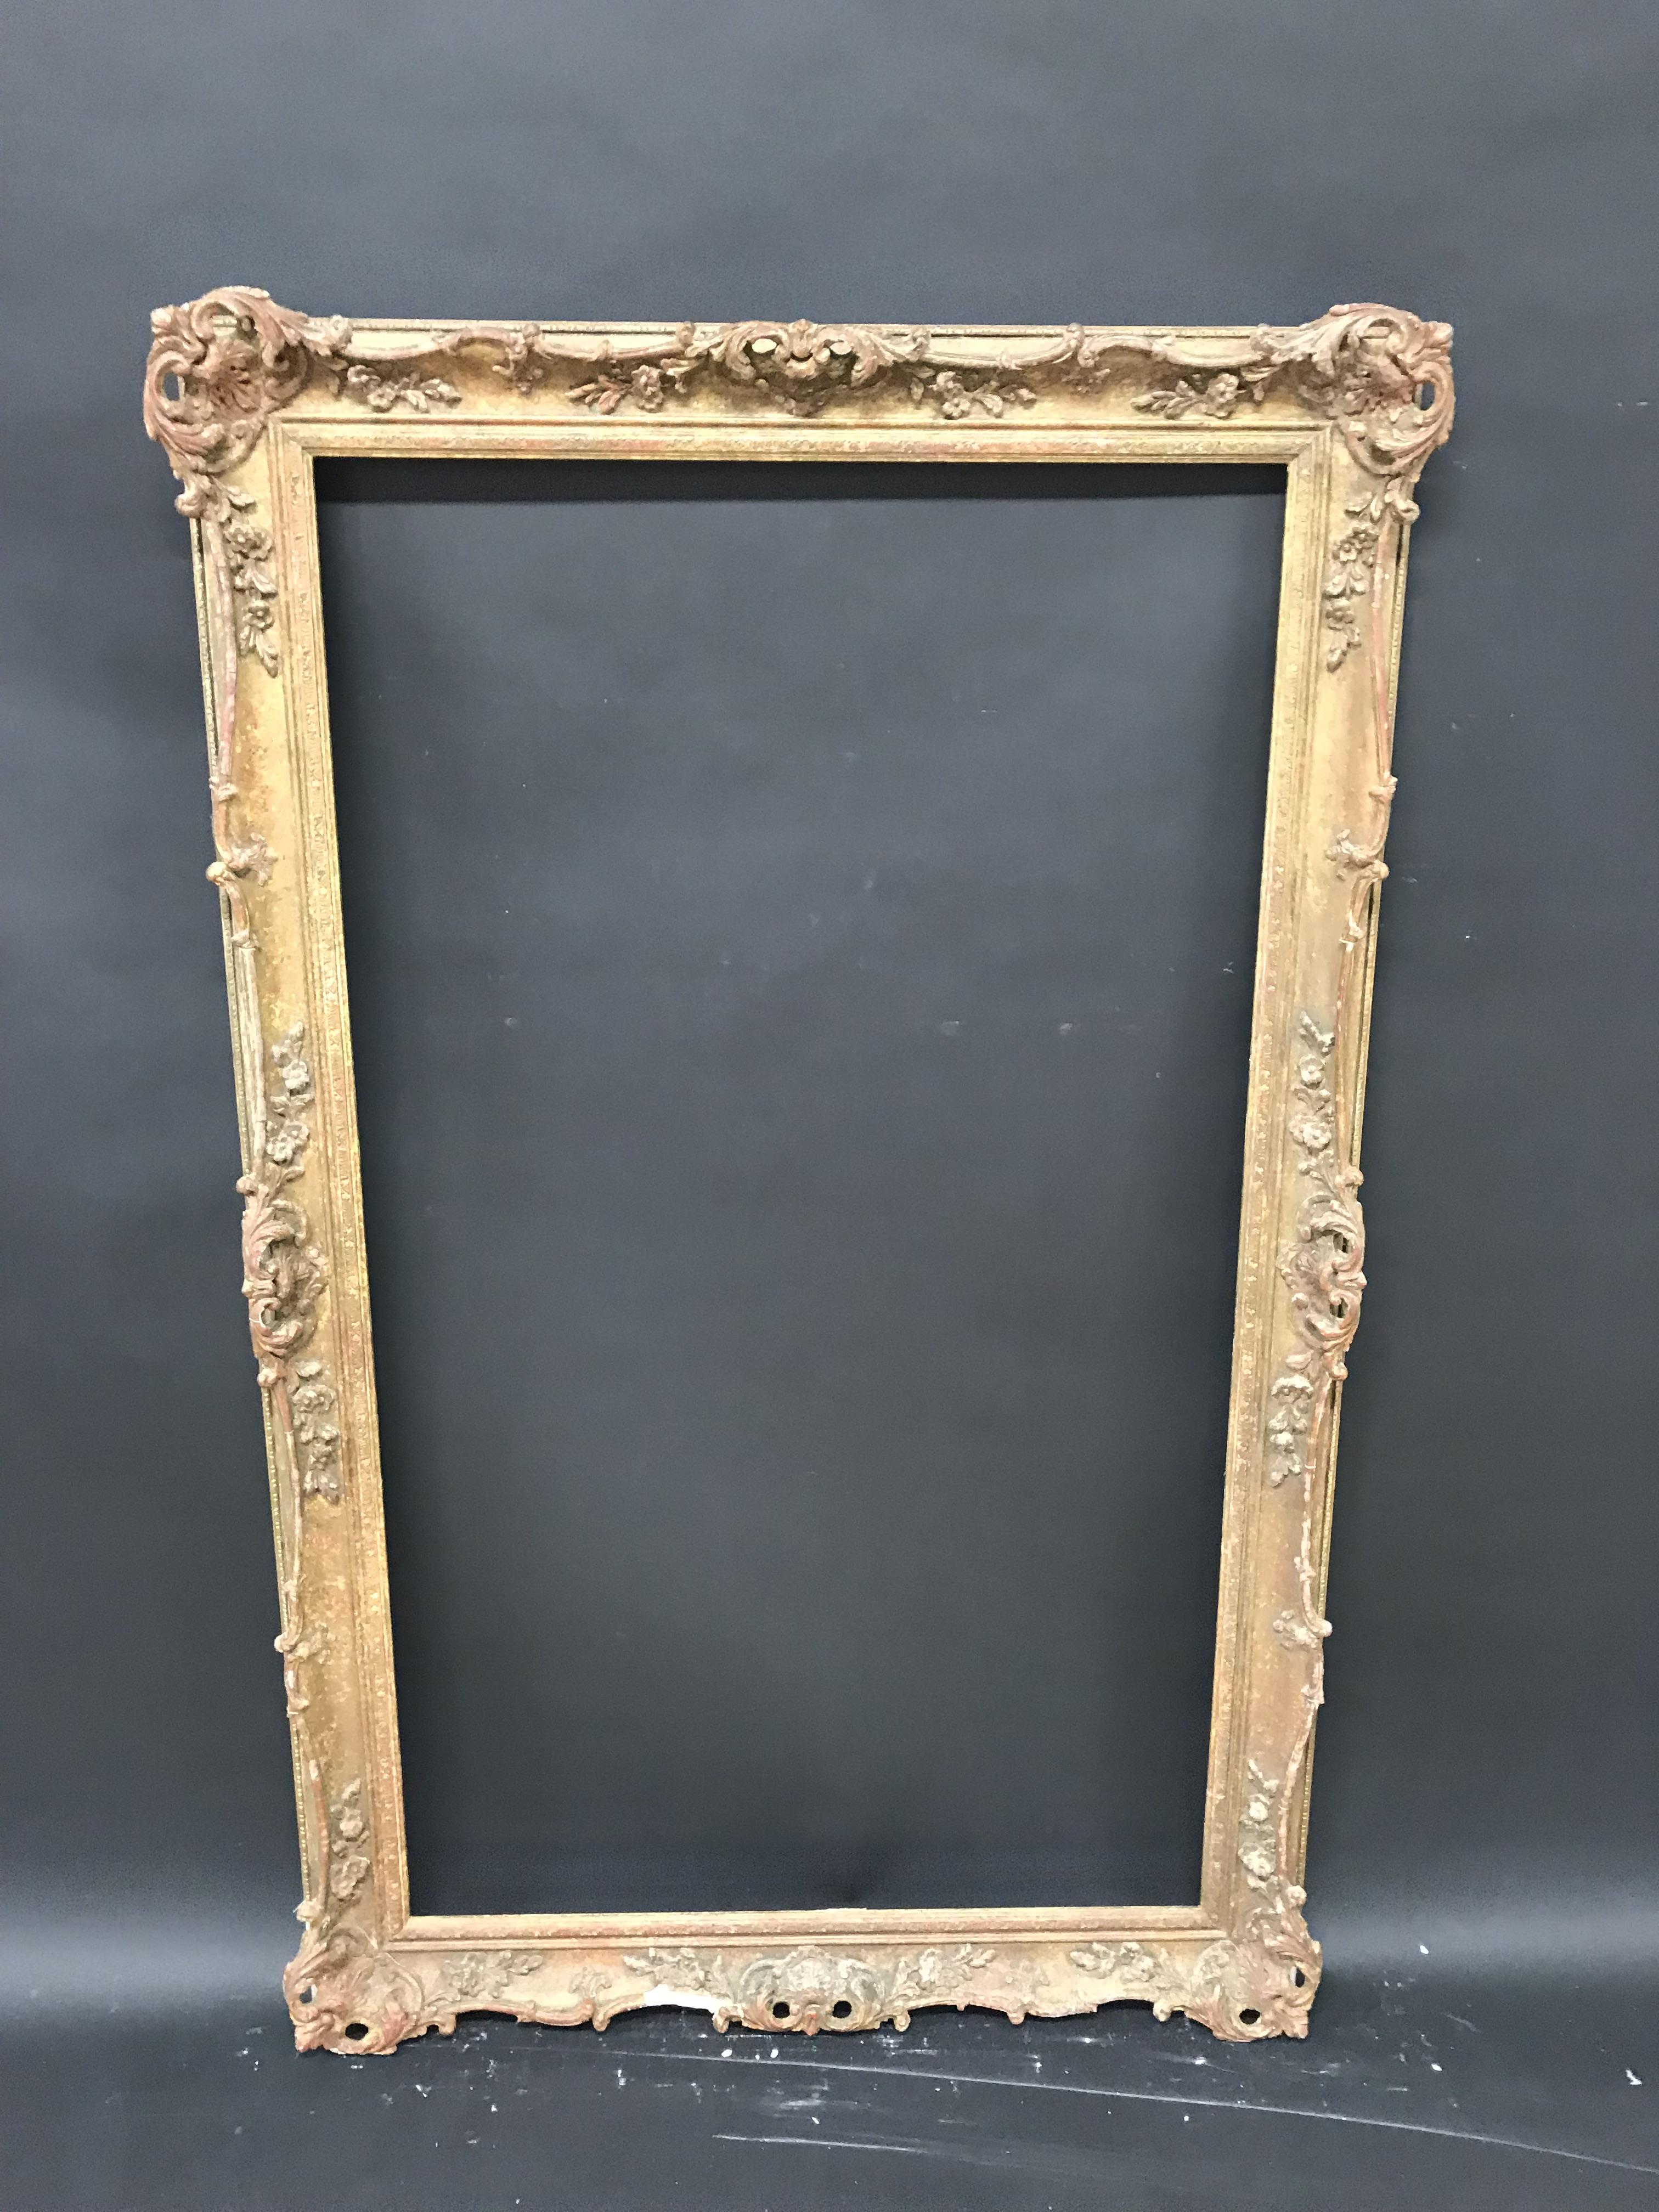 Lot 34 - 20th Century English School. A Gilt Composition Frame, with Swept and Pierced Centres and Corners,